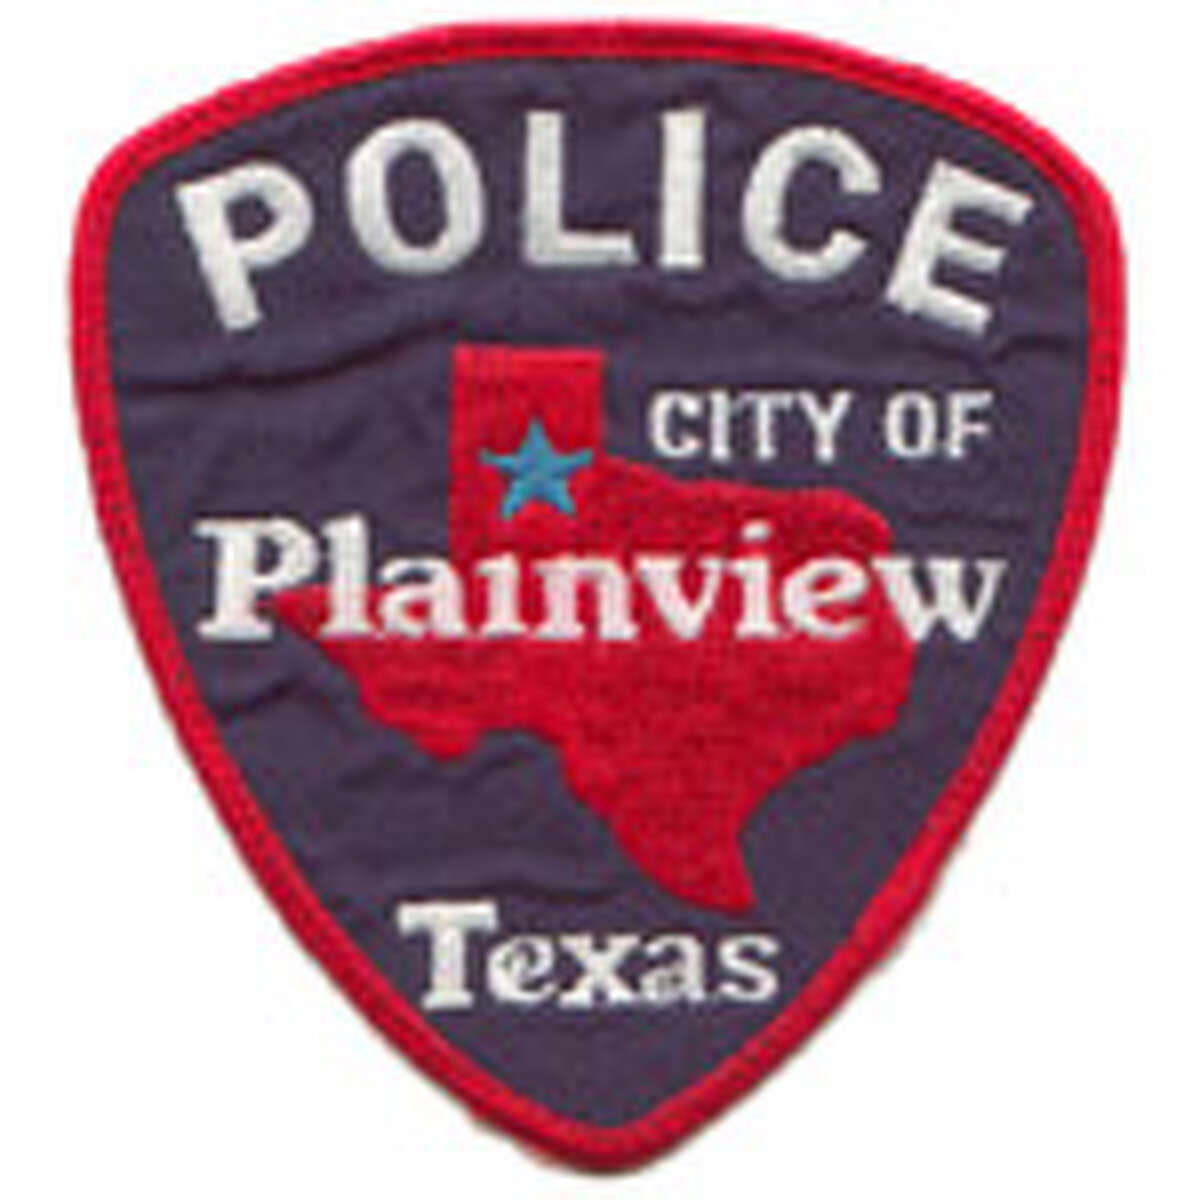 Plainview police patch